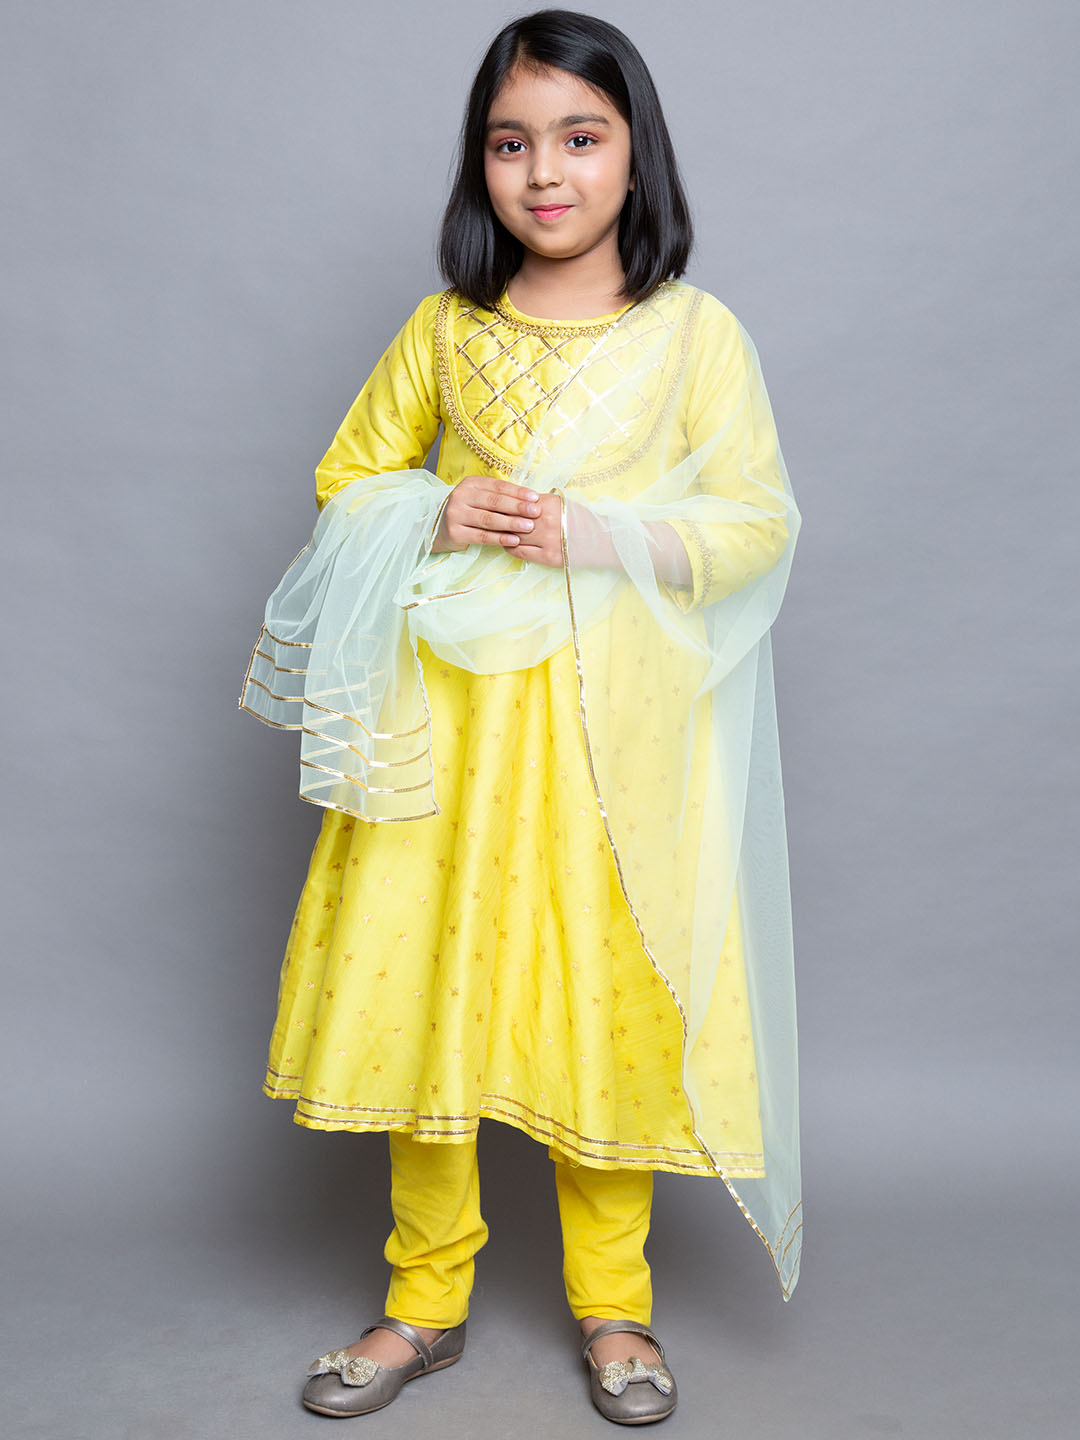 Gota Embroidered work  Lemon Yellow colour  Suit  with Net dupatta and yellow leggings